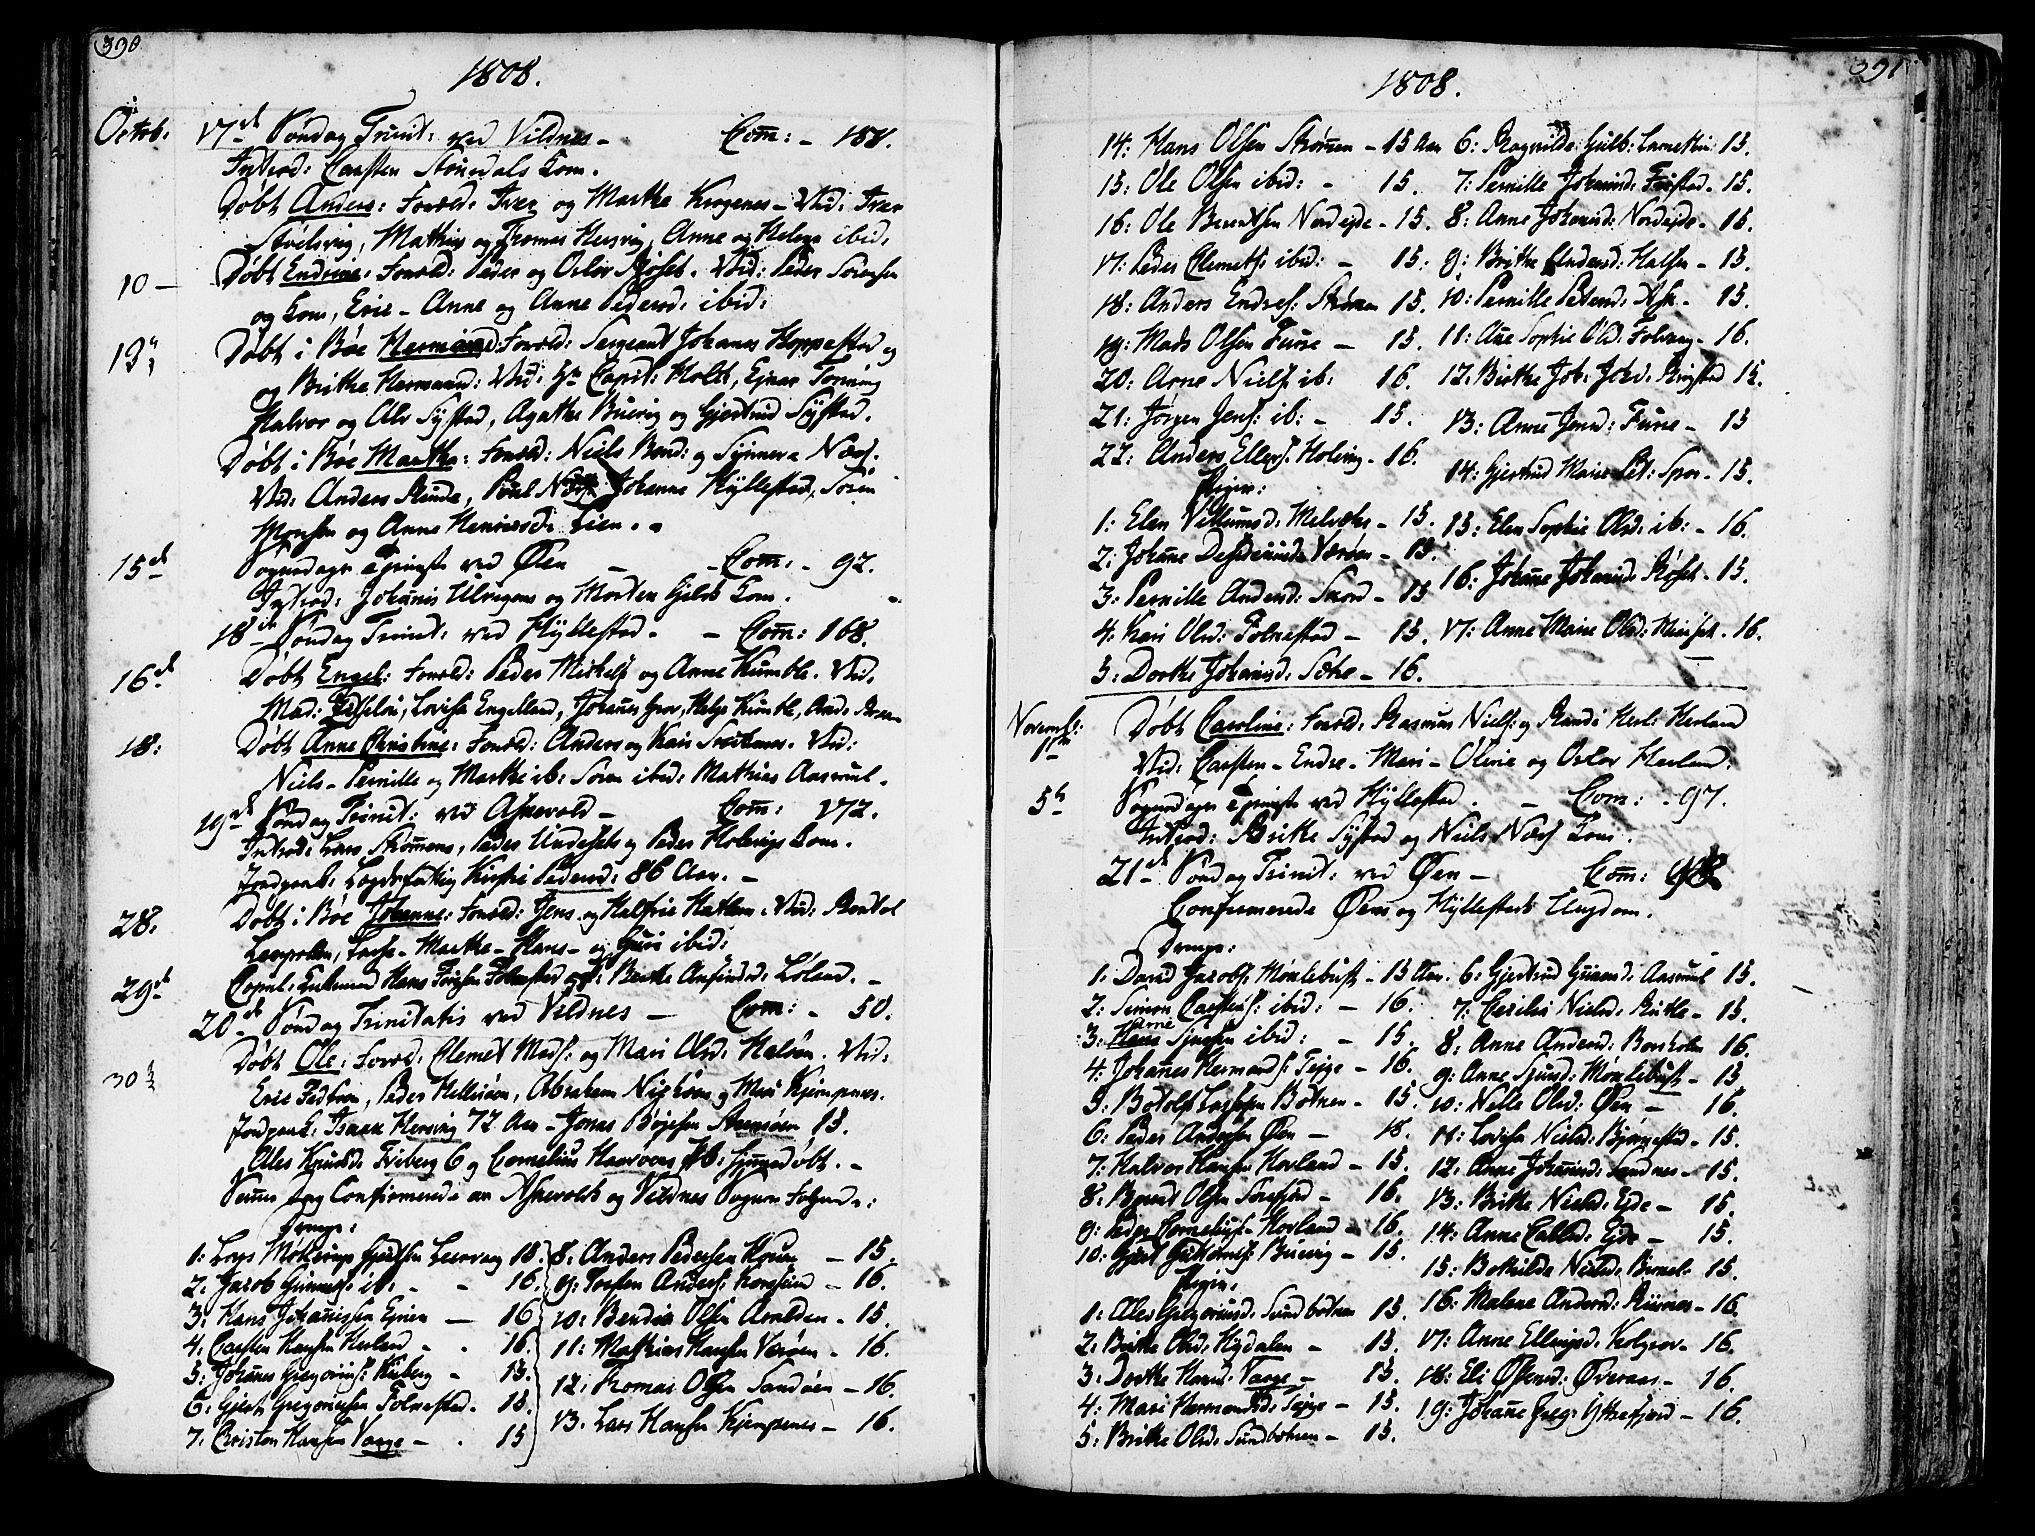 SAB, Askvoll sokneprestembete, H/Haa/Haaa/L0009: Parish register (official) no. A 9, 1776-1821, p. 390-391